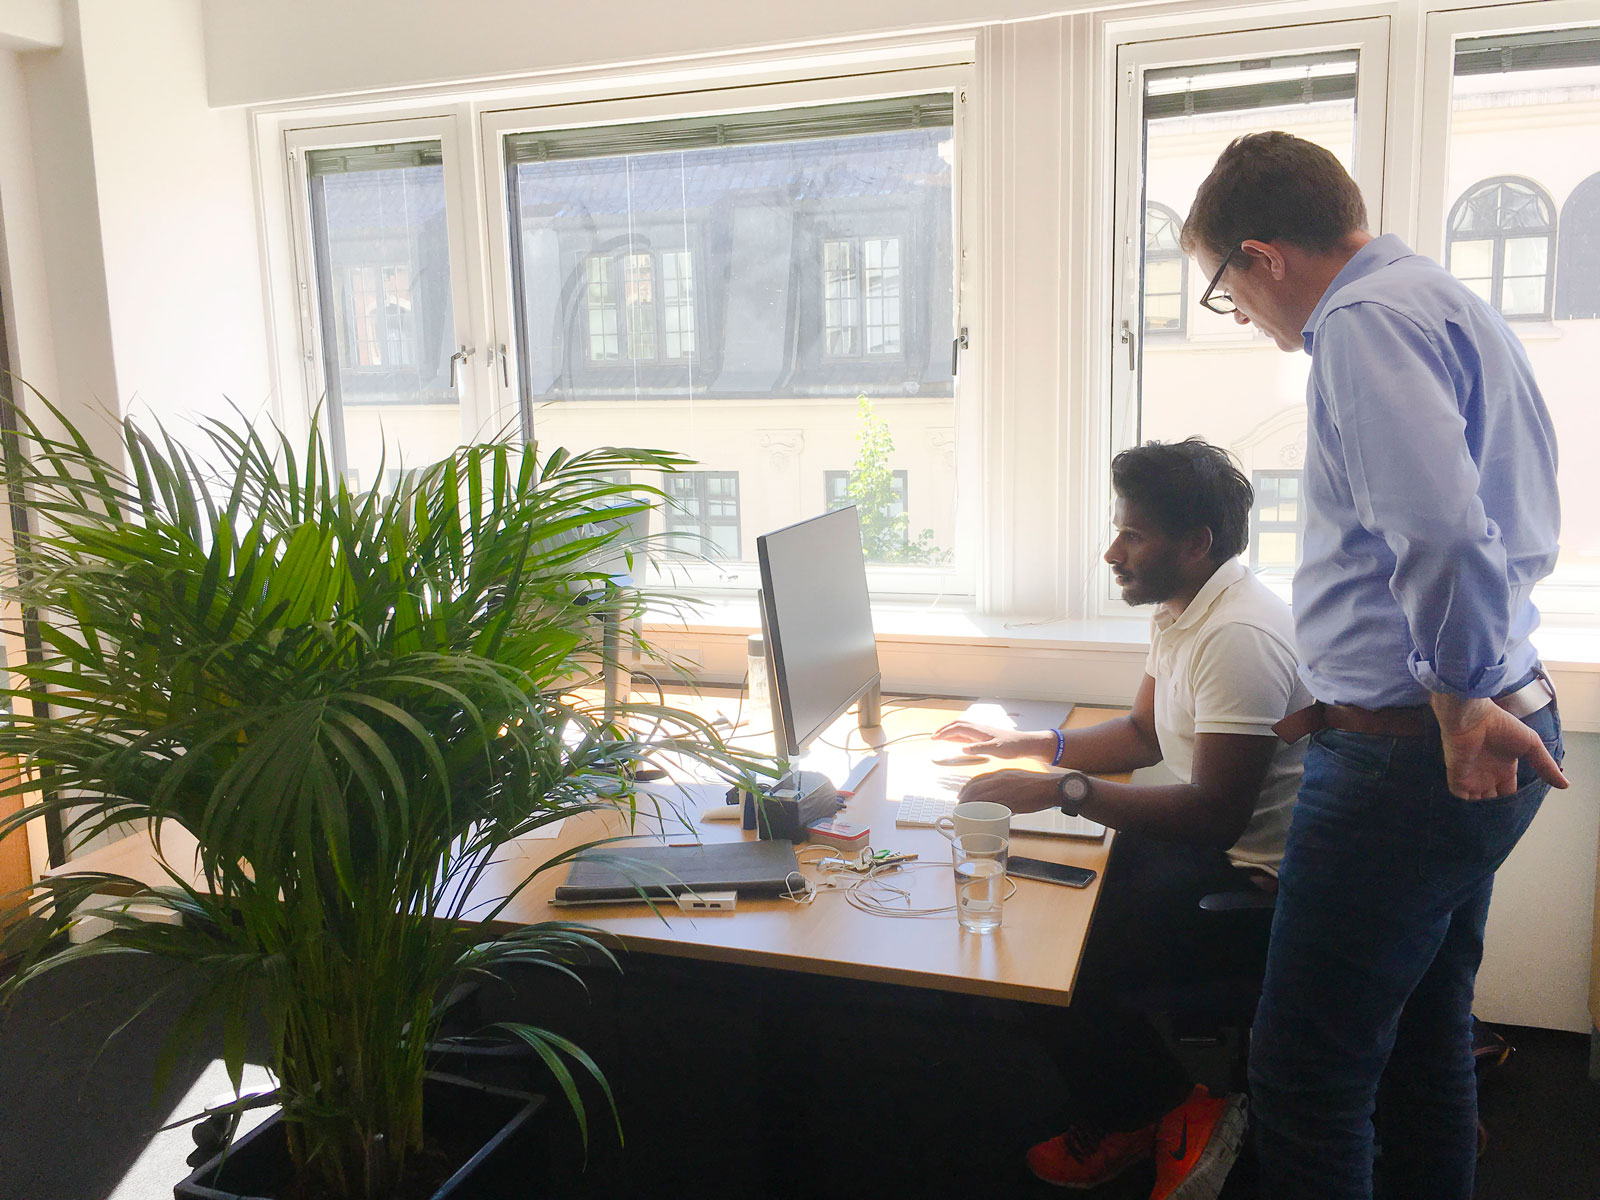 Two Gture employees working with digital transformation in the Gture office